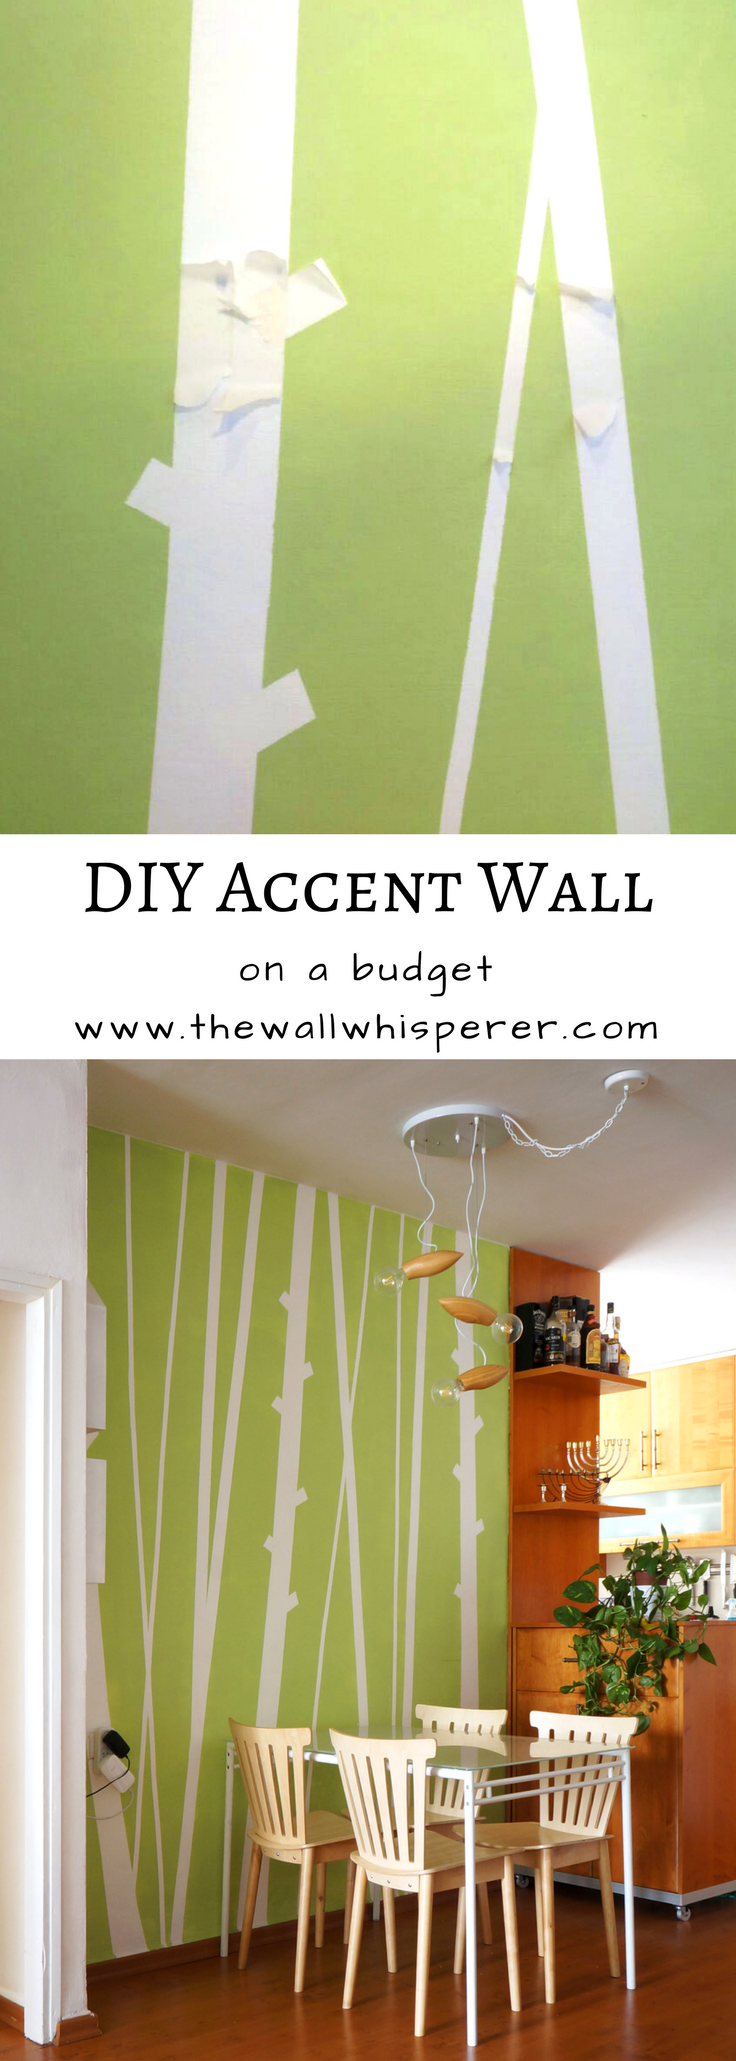 The Best Painters Tape Design Idea On Pinterest Incredible Wall Paint Design Idea With Tape Or Masking Tape Painters Tape Design Wall Paint Designs Cool Walls